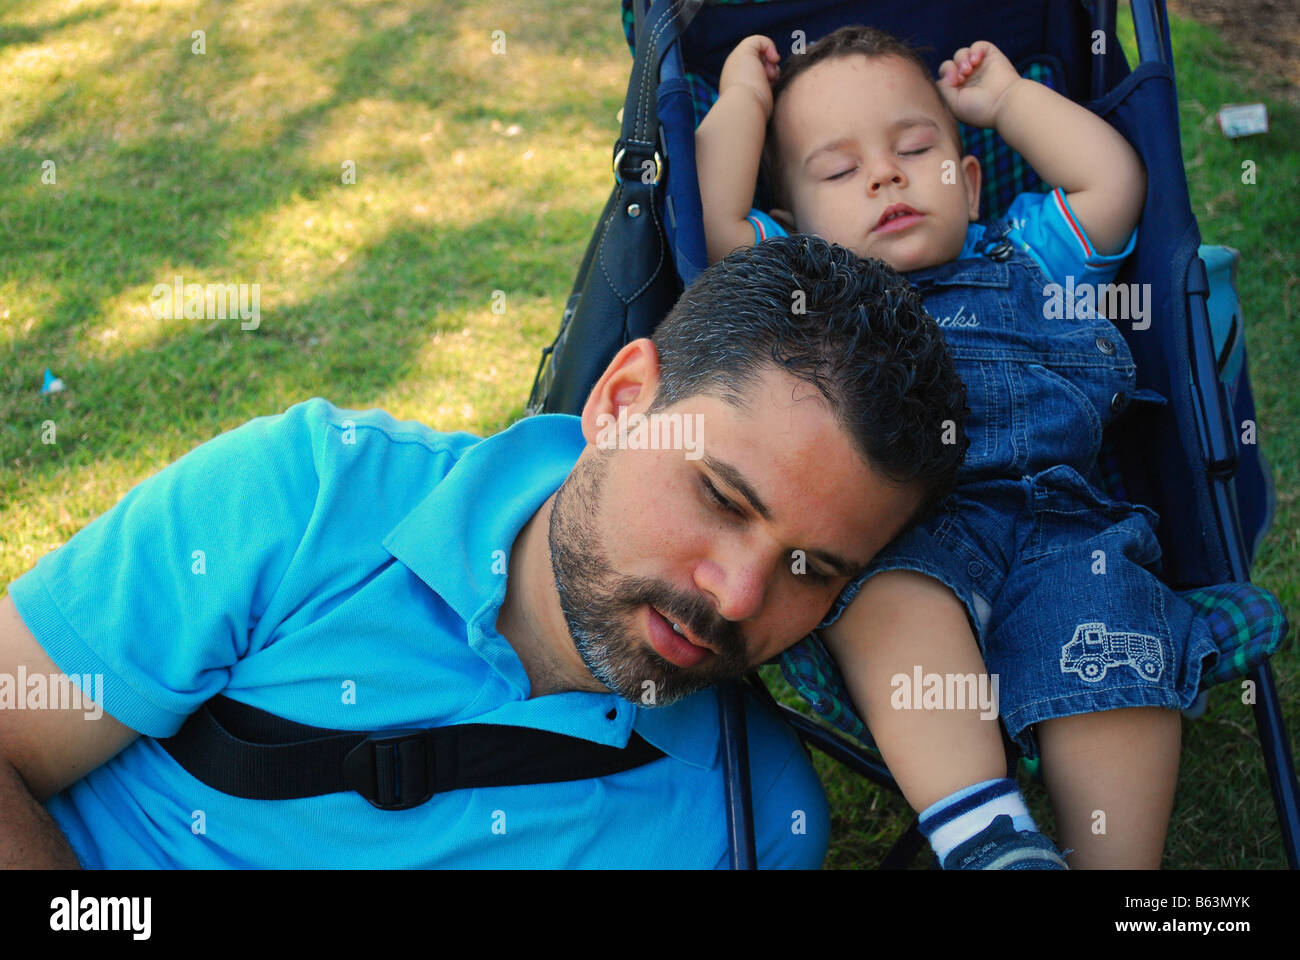 A father sleeping with his toddler son - Stock Image